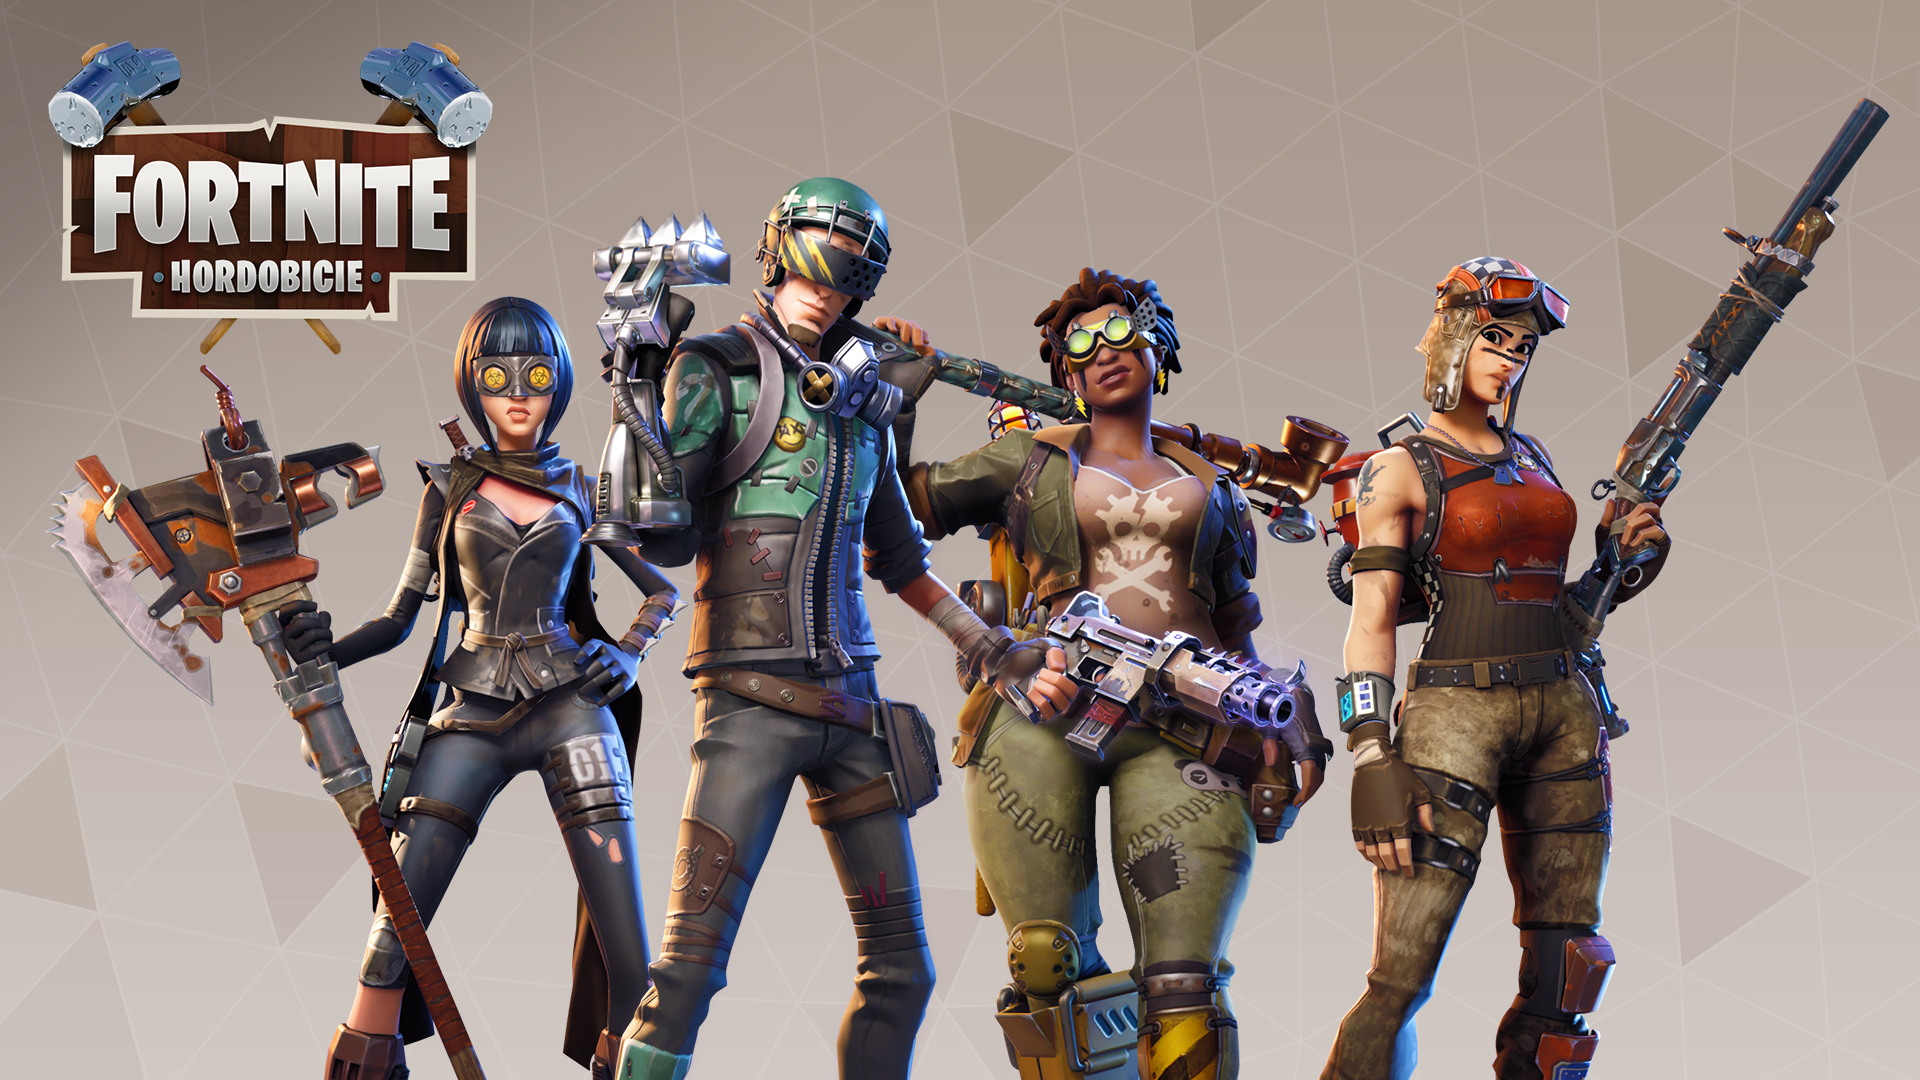 Fortnite%2Fblog%2Fea-1-7-patch-notes%2FPL-HB-Heroes-1920x1080-88599d0b01a6b68fbb54c03d960de06967741994